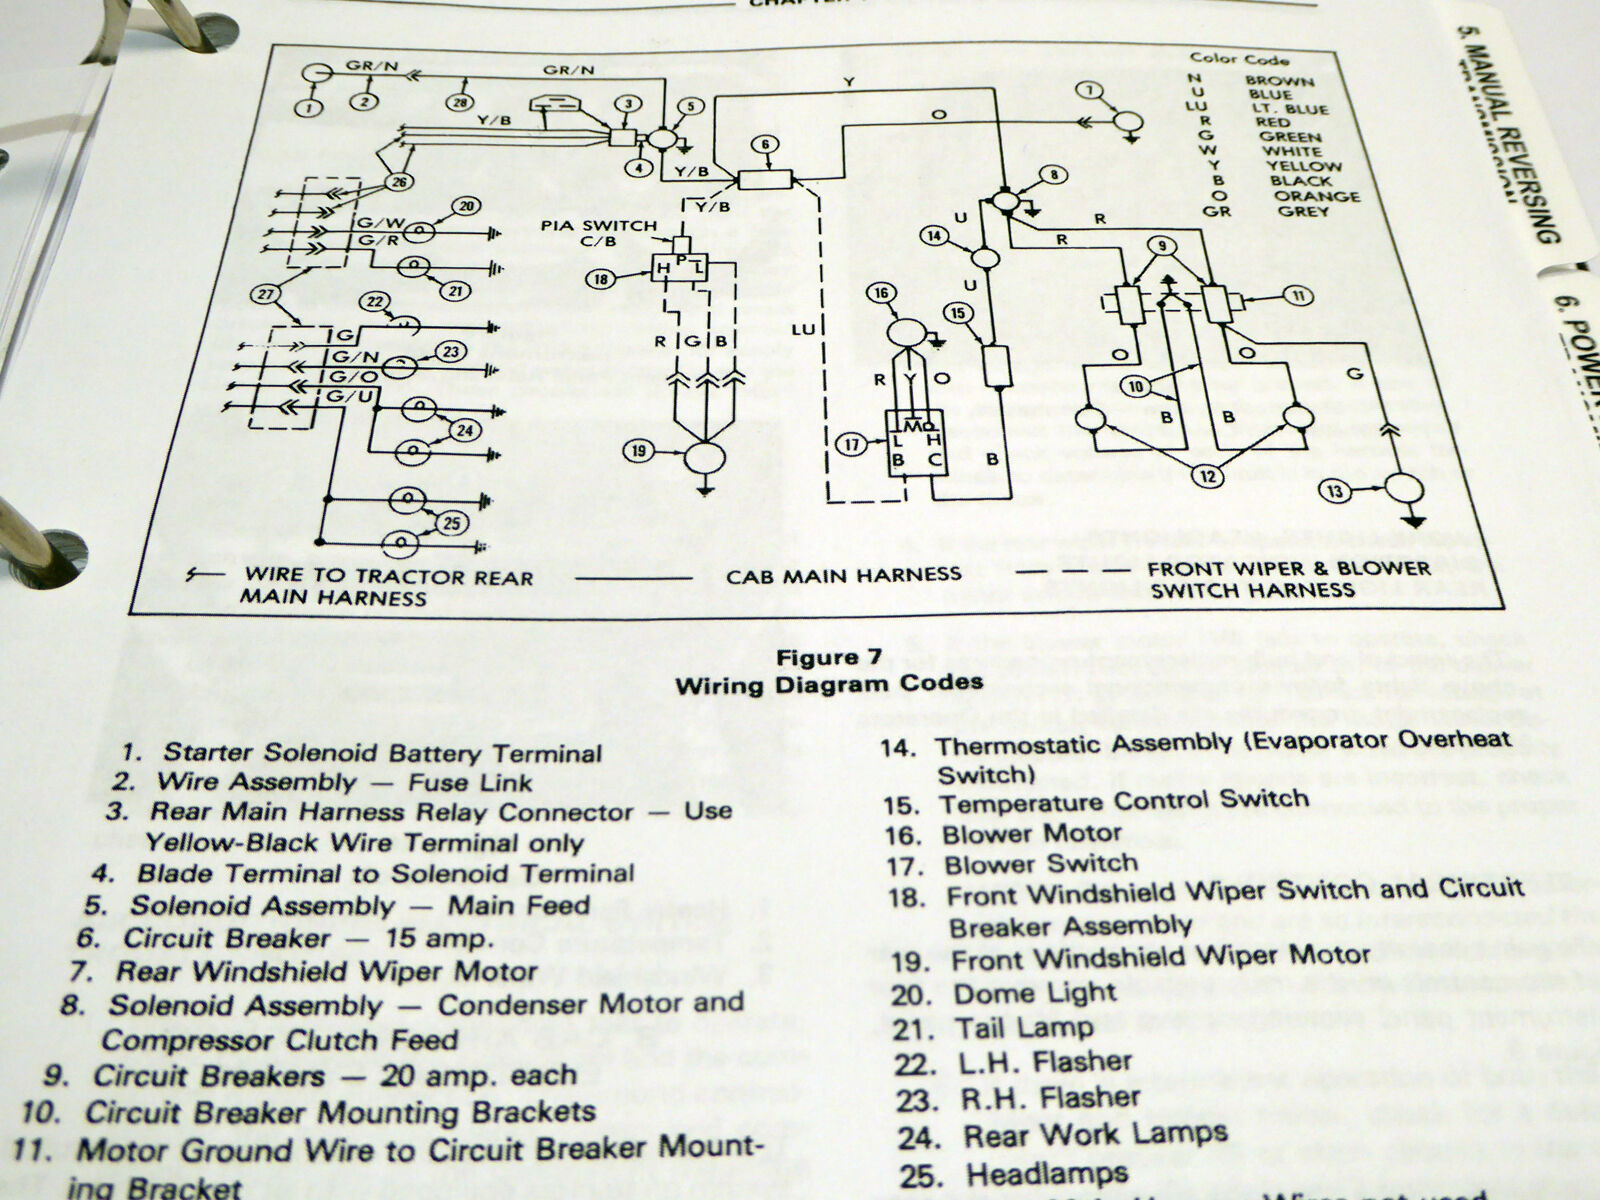 business & industrial ford 655a tractor loader backhoe operator operation &  maintenance book manual heavy equipment parts & accessories  cdc telecom